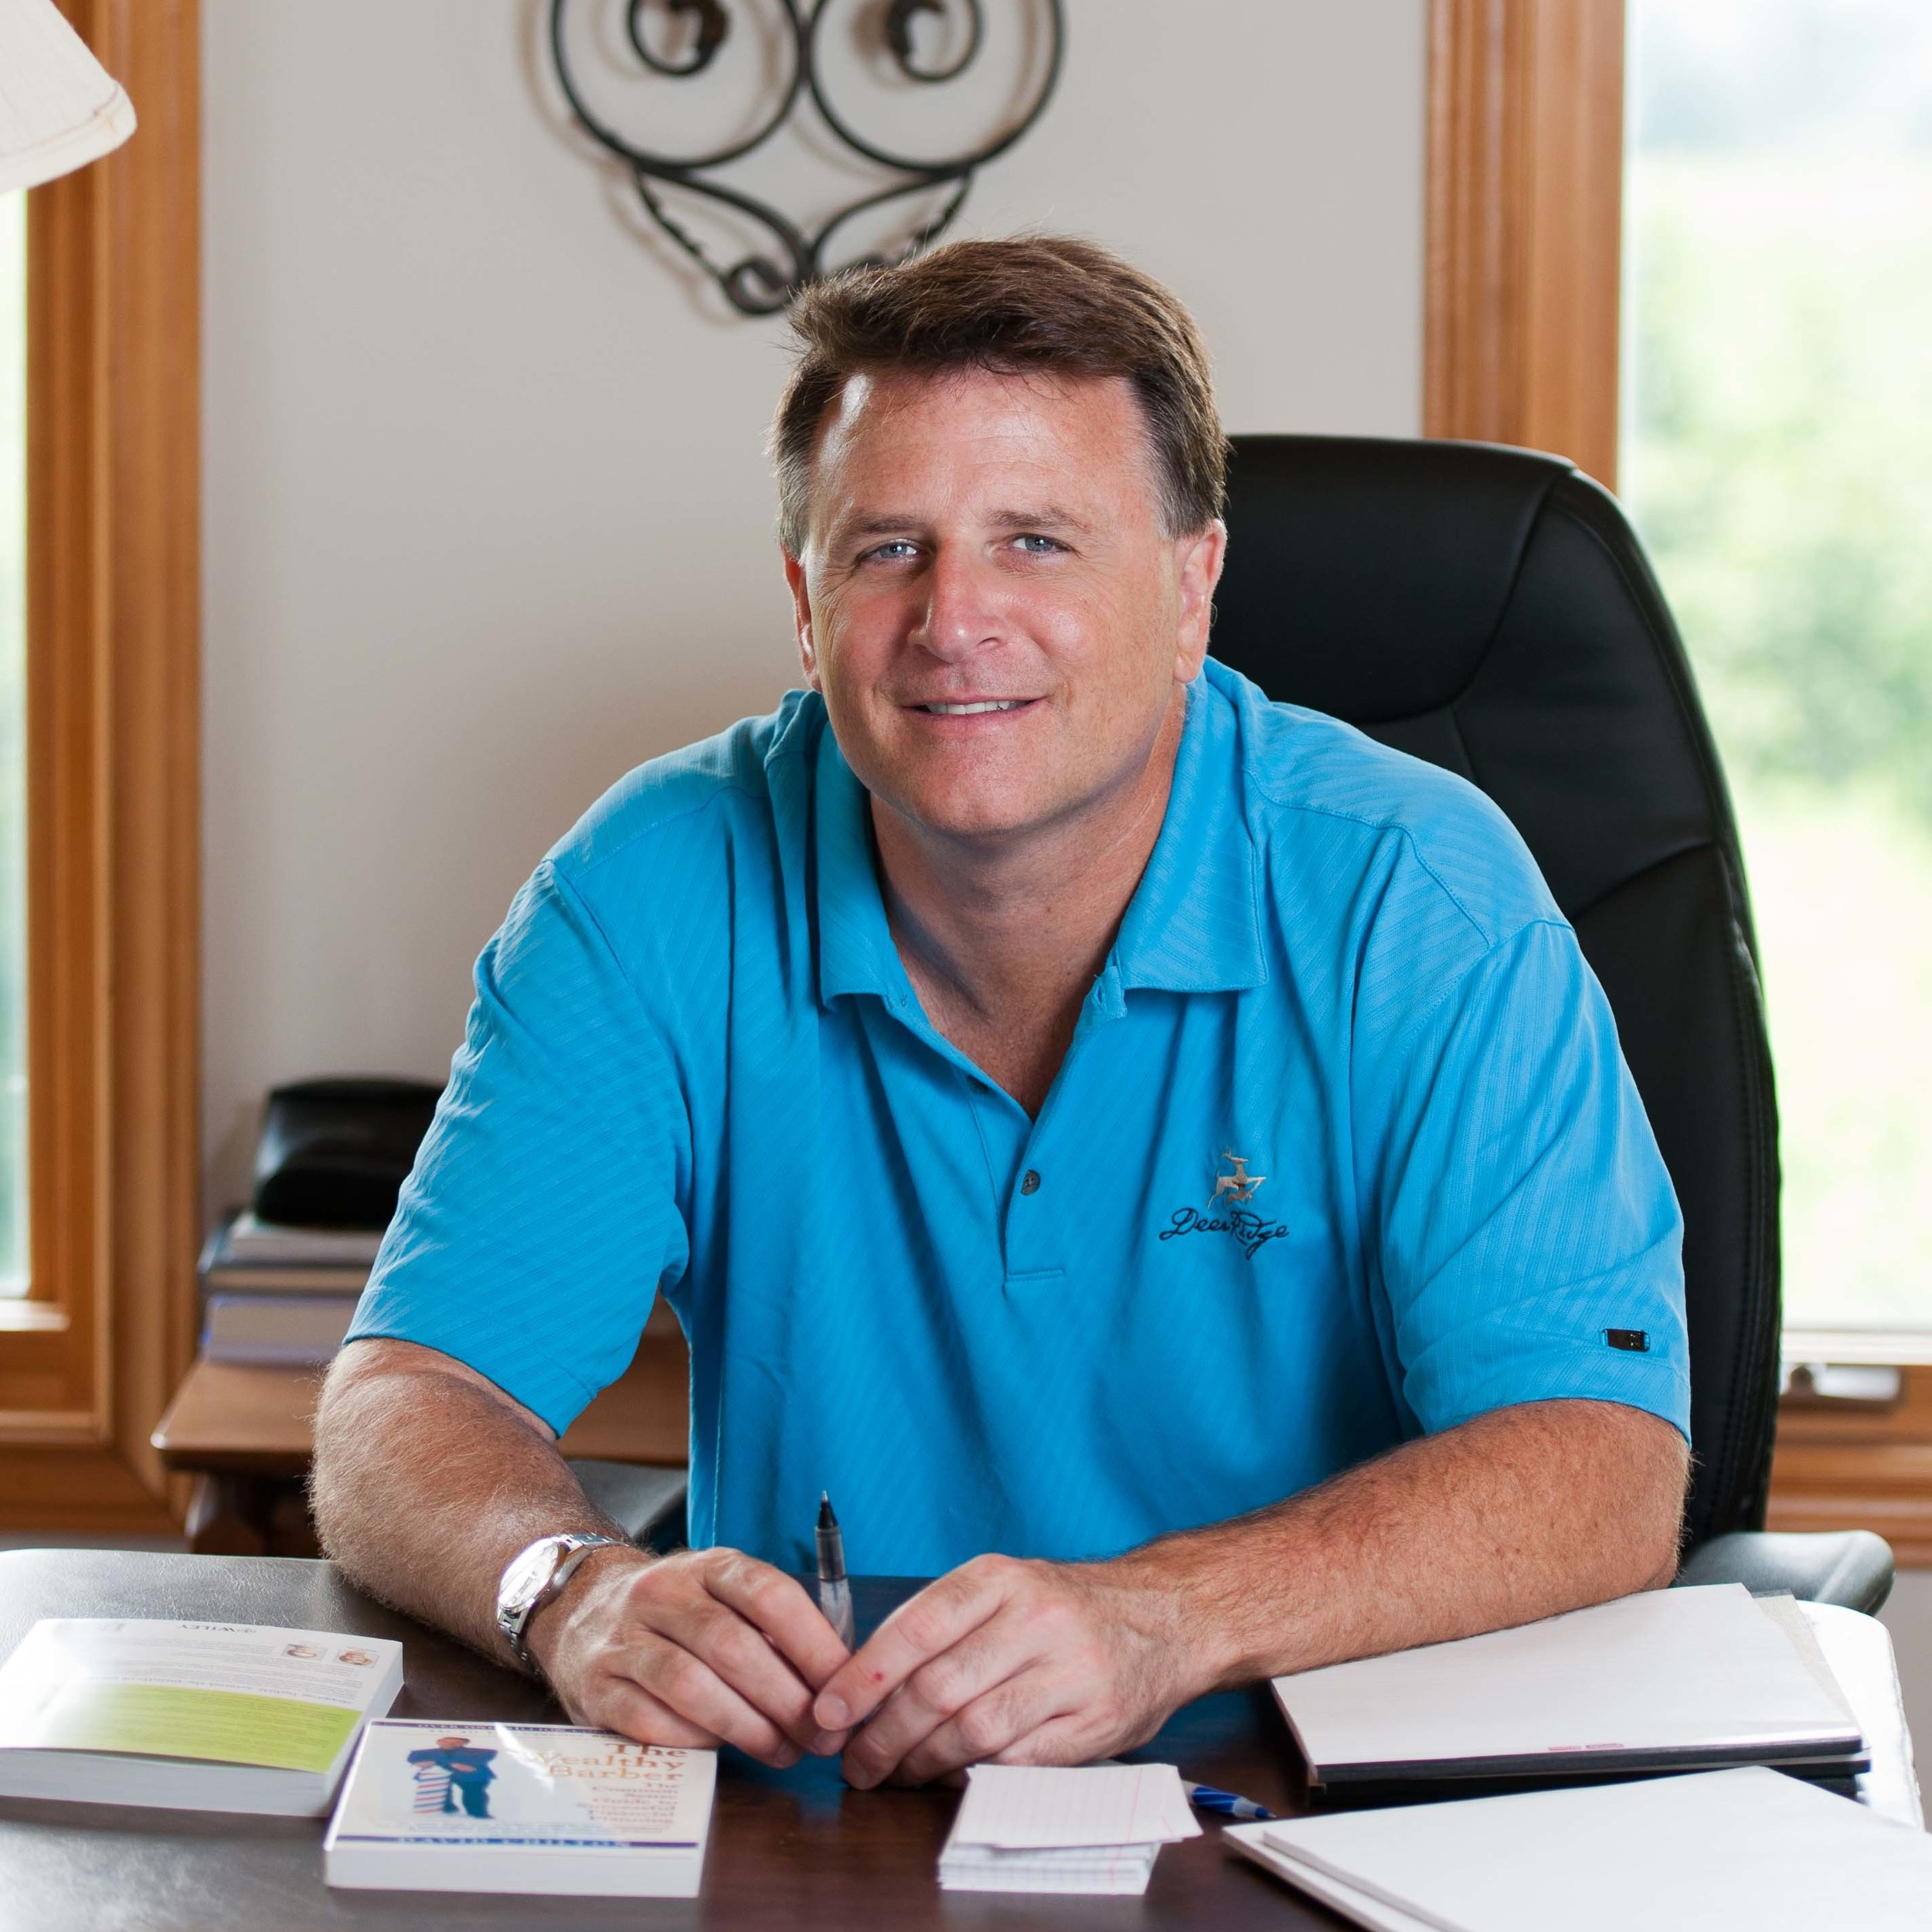 David Chilton, bestselling author of The Wealthy Barber, Dragons' Den cast member, and host of The Chilton Method